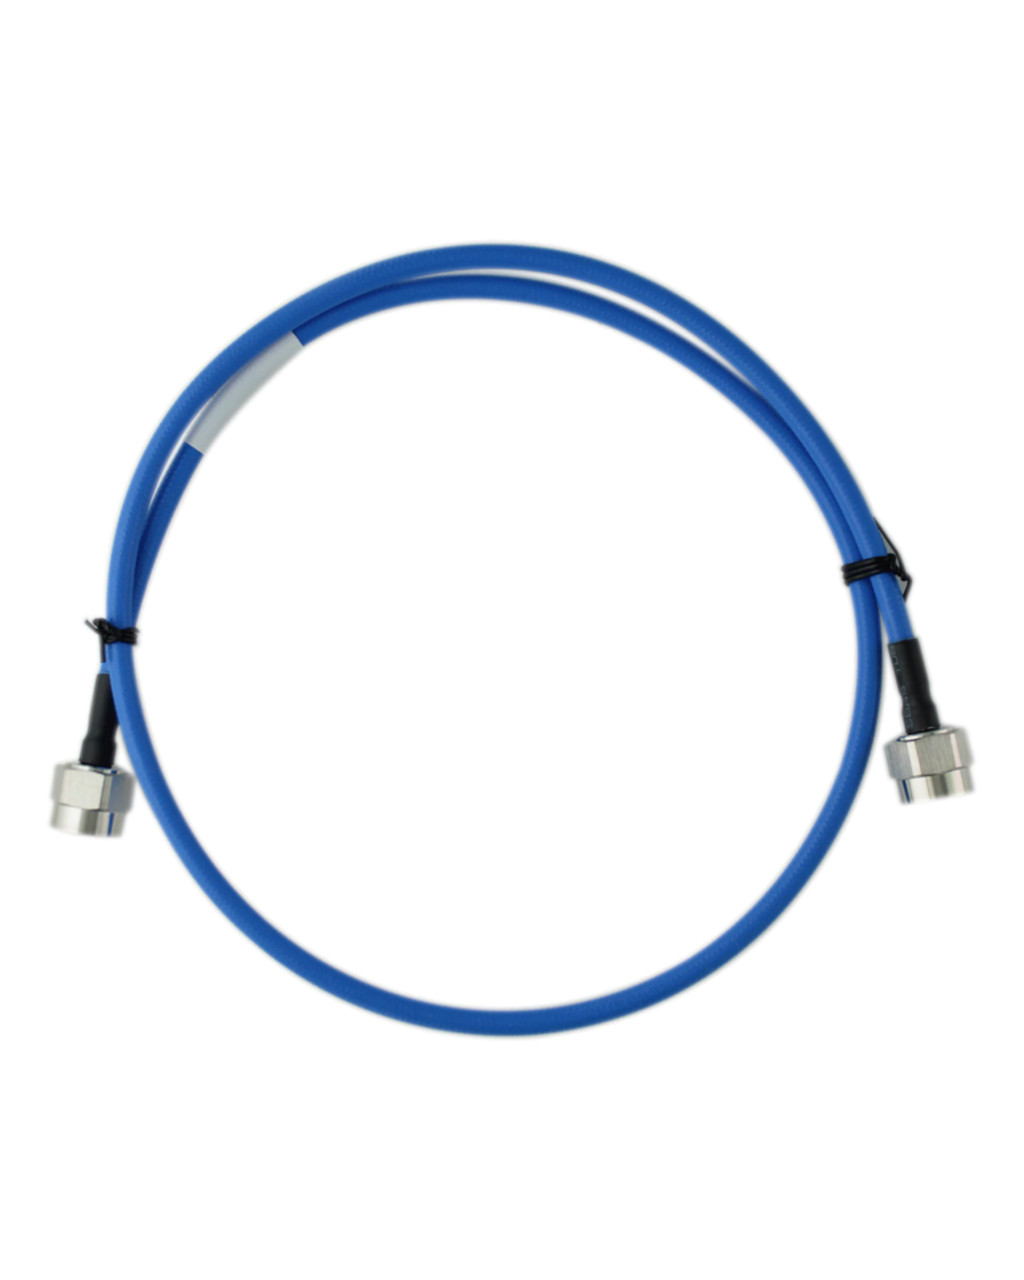 SPO-250 Jumper Cable - N-Male to N-Male Connectors 3 ft